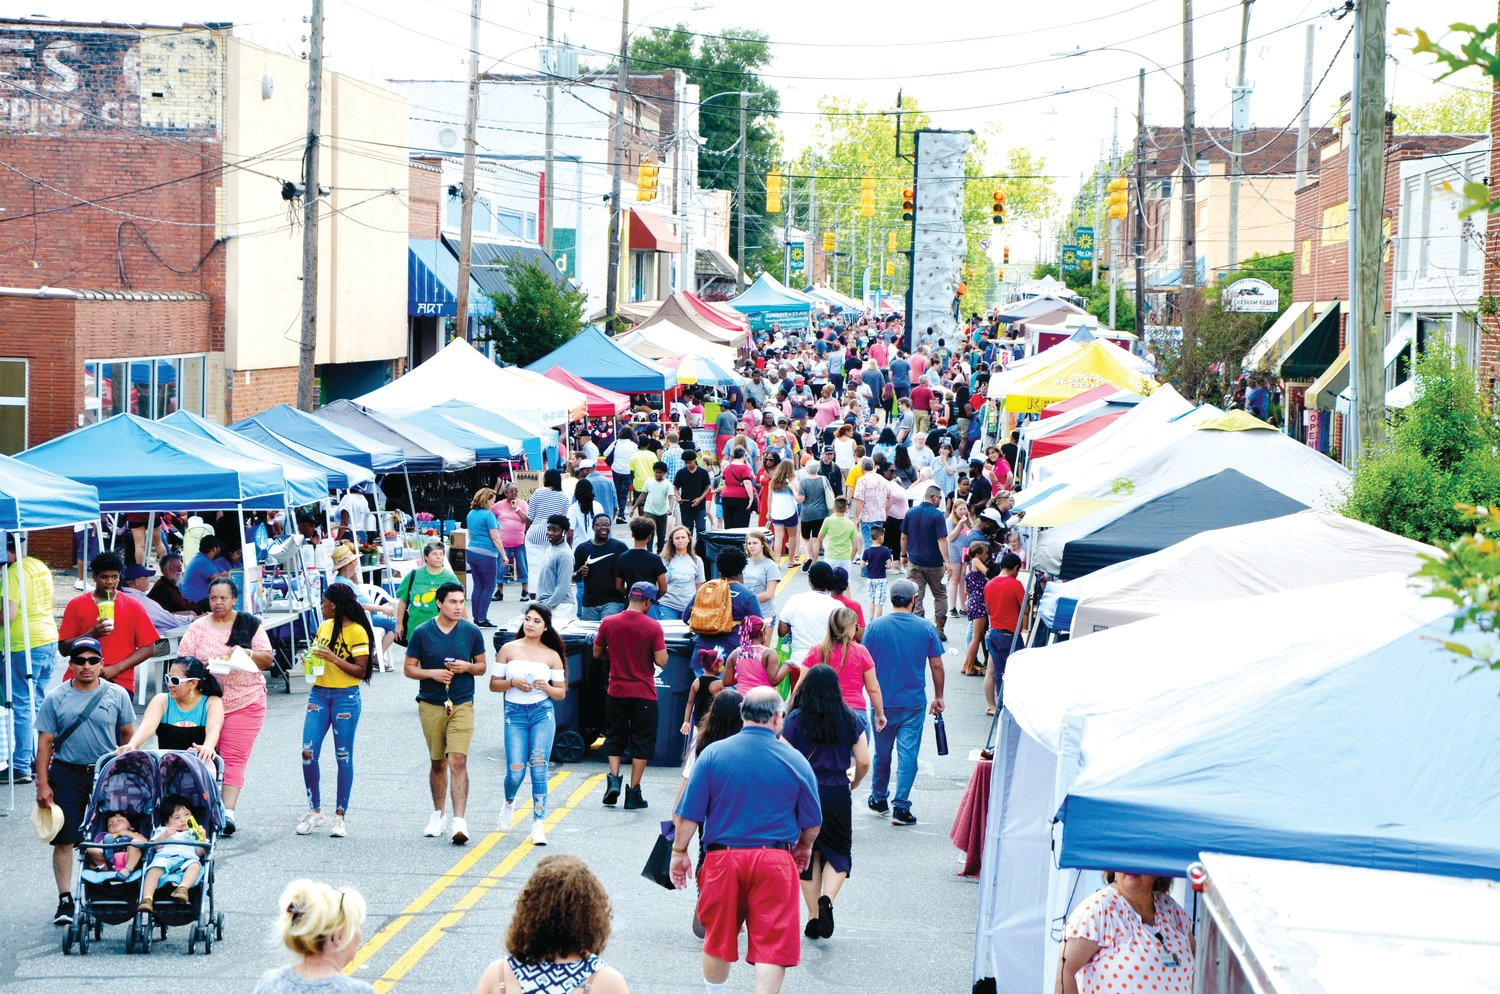 A warm Saturday and a threat of rain didn't keep the crowds from attending the Spring Chicken Festival Saturday in downtown Siler City. Chatham Avenue was blocked off for fun, food and face-painting, with more than 5,000 people attending.